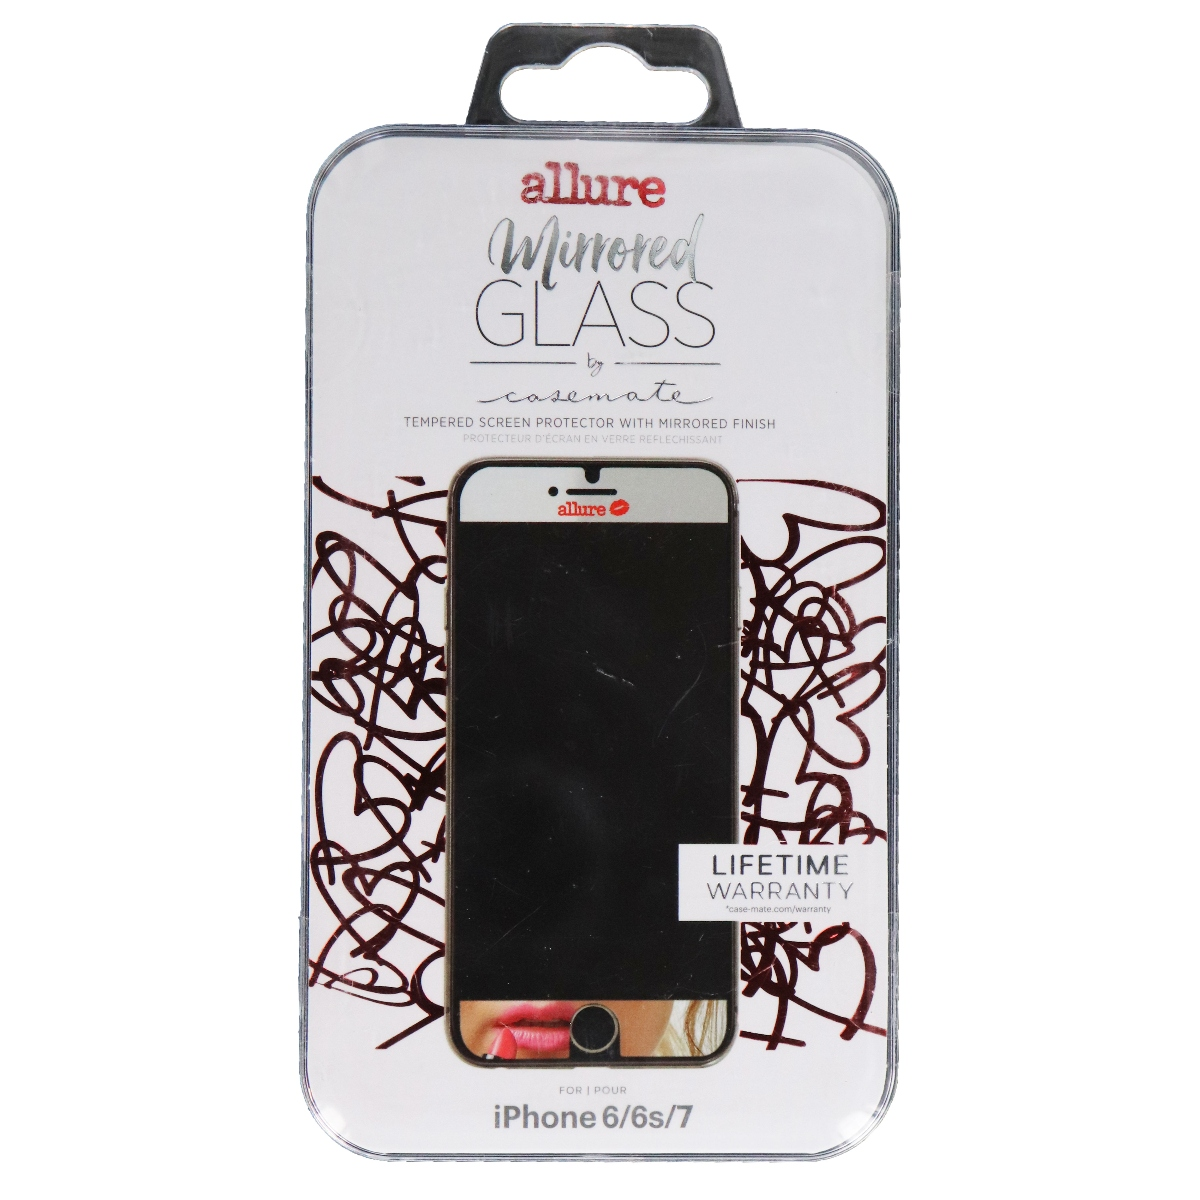 Case-Mate Allure Mirrored Tempered Glass for iPhone 7 6s - Mirrored